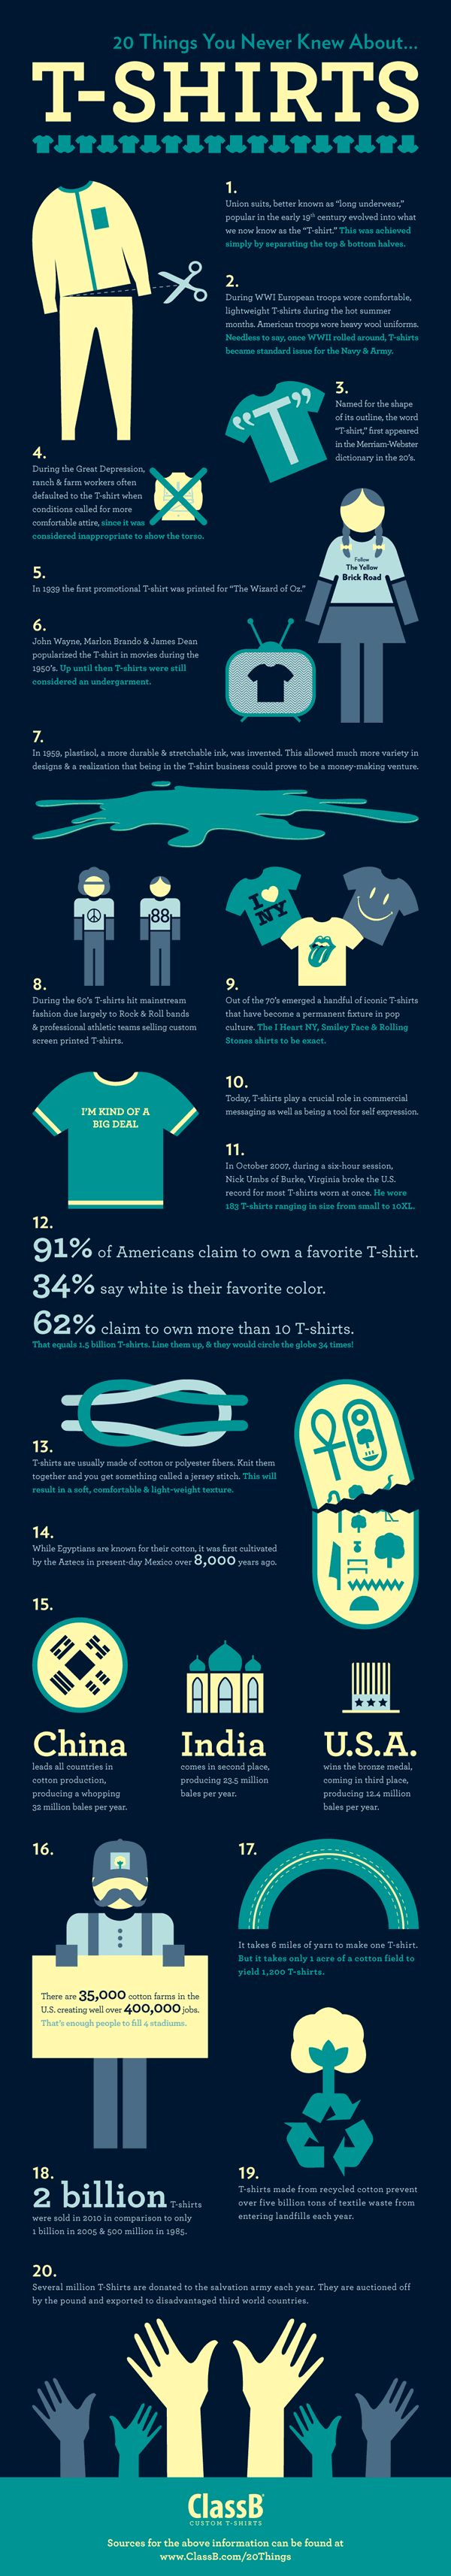 20 Things You Never Knew About T-Shirts | US Custom T Shirts